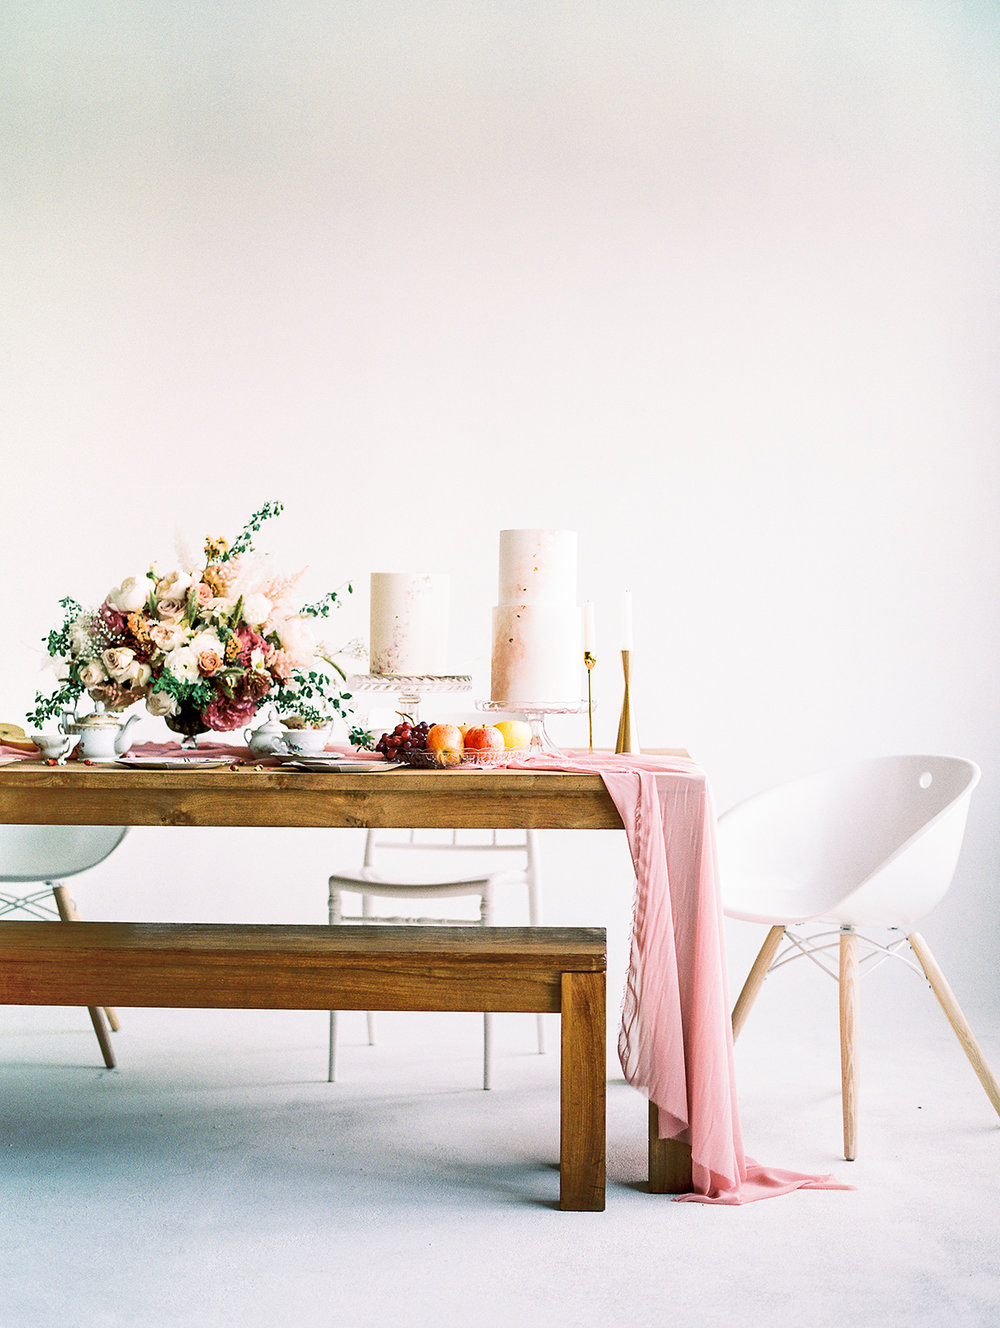 Cakes by  Sugar Lane . Styled by  Olea & Fig Studio ; Photo by  Kylee Yee Photography .